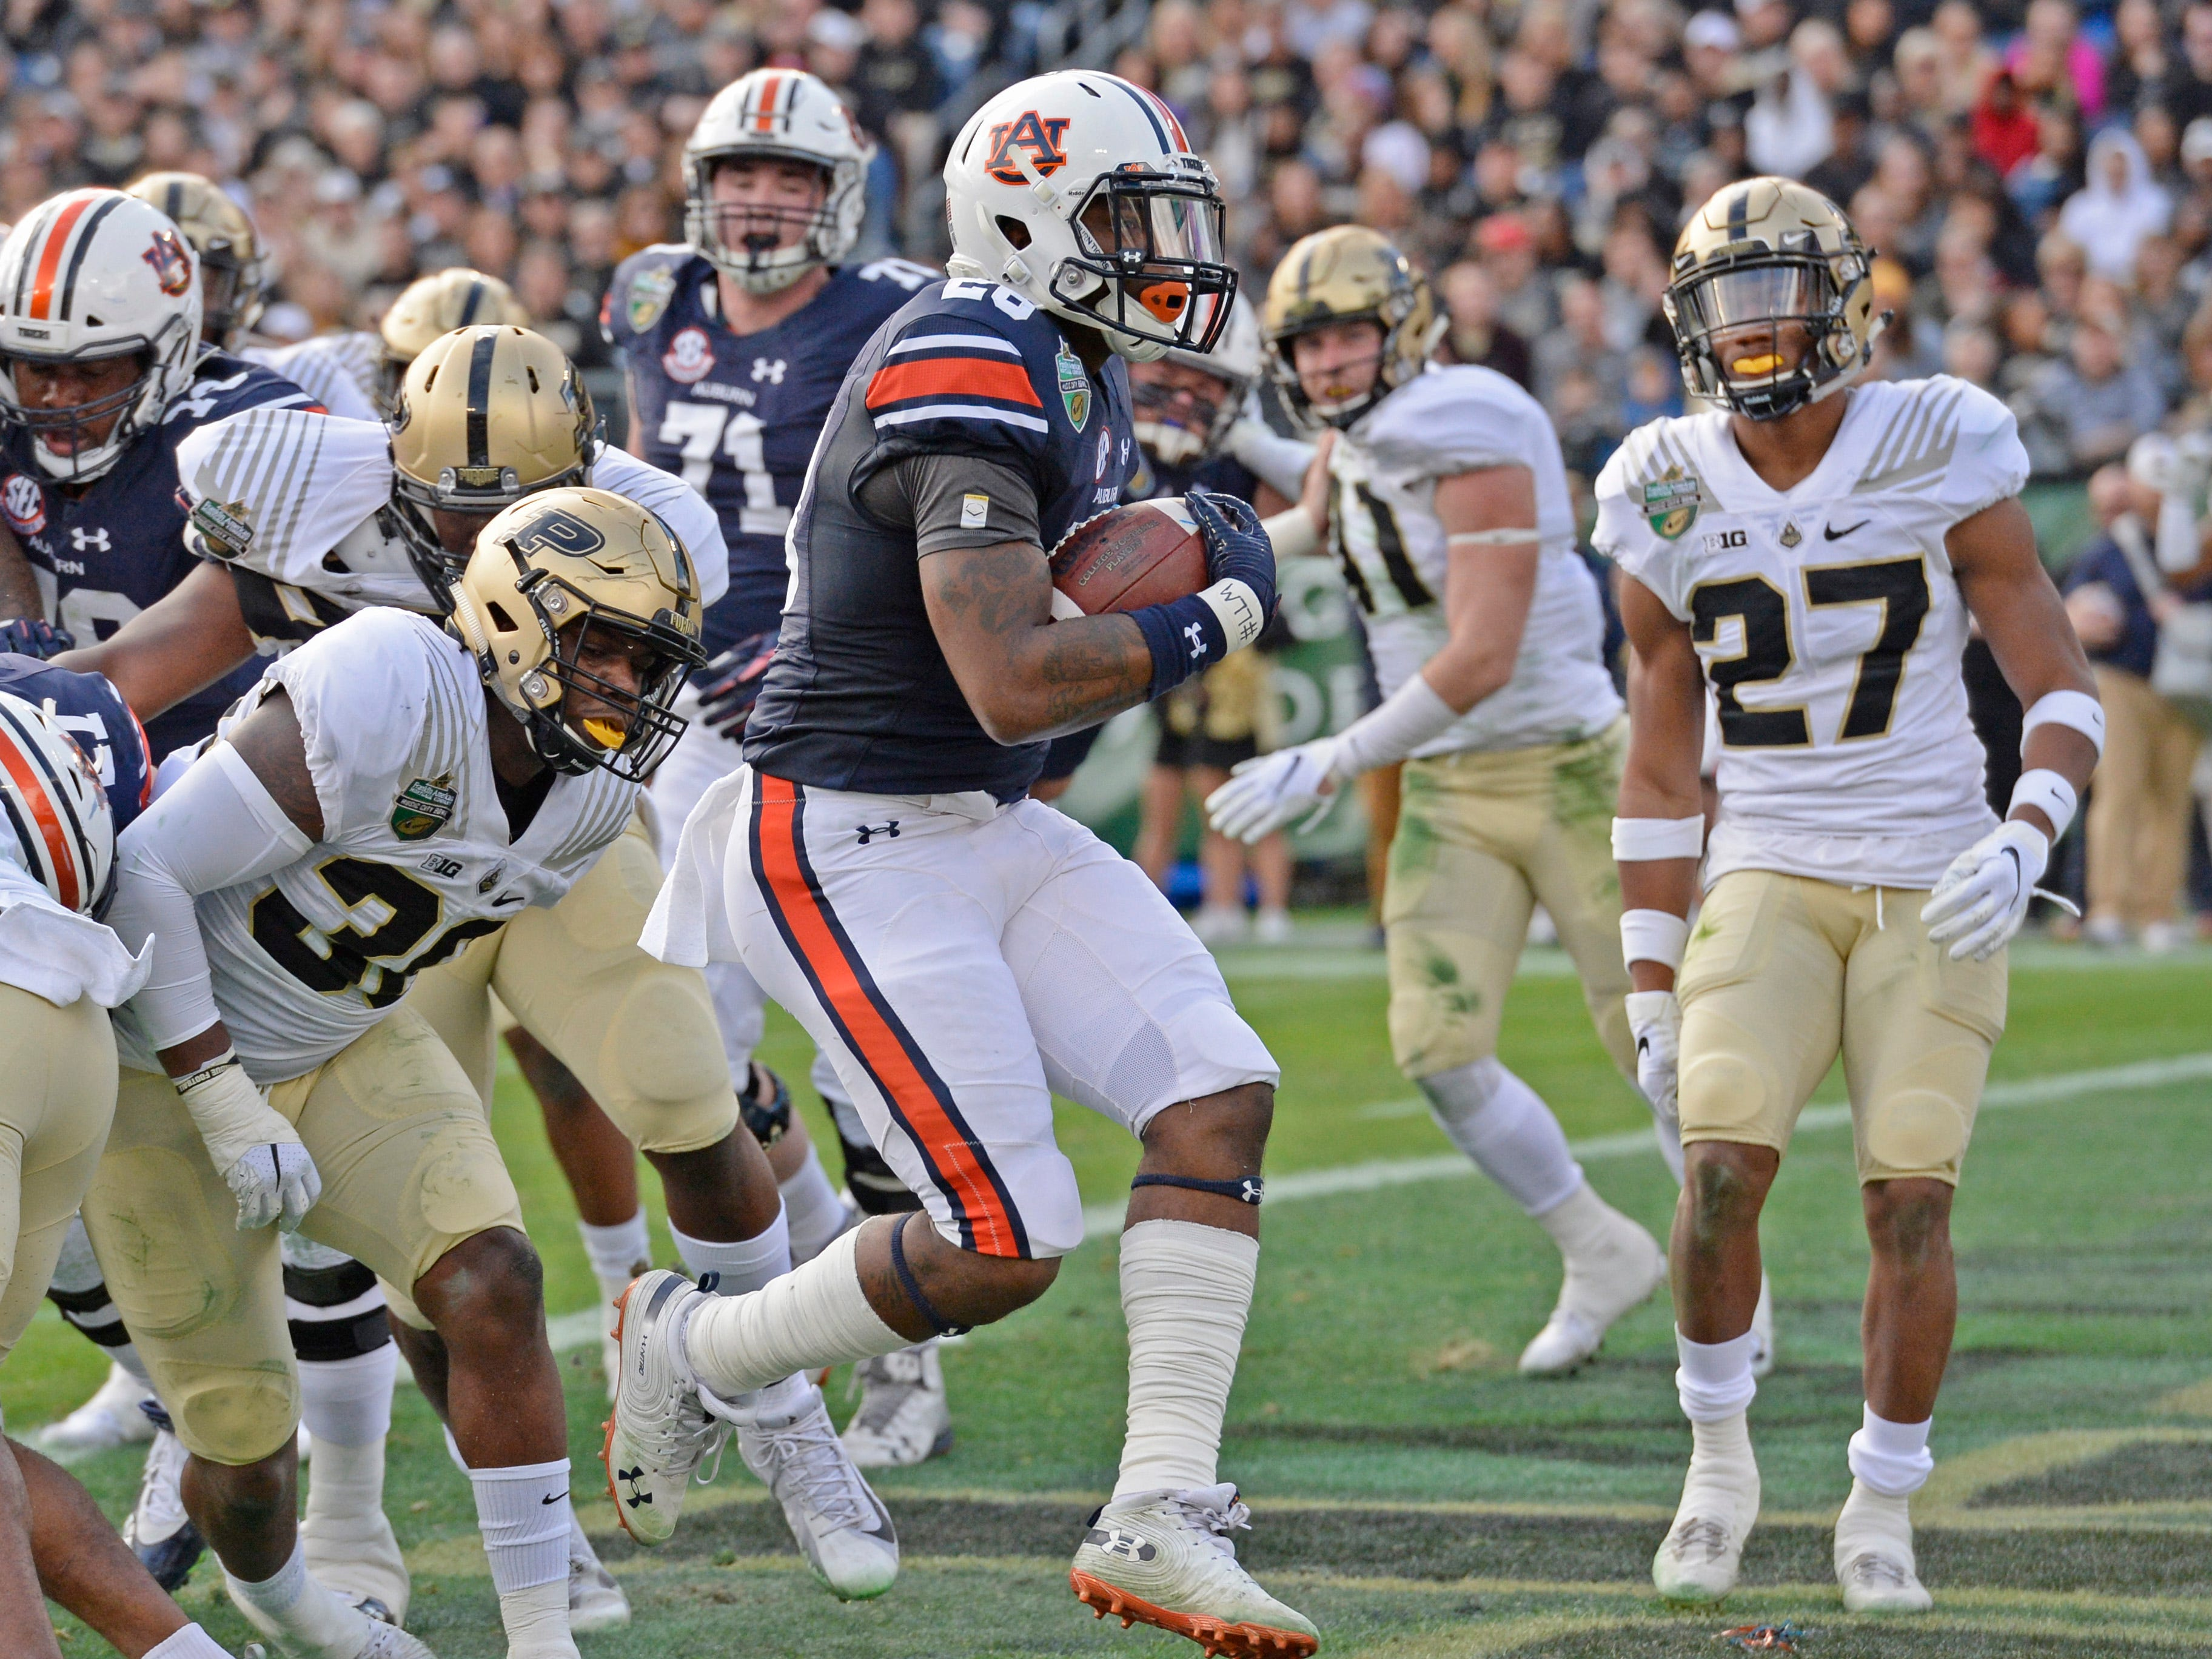 Auburn running back JaTarvious Whitlow (28) runs into the end zone for his second touchdown of the first quarter of the Music City Bowl NCAA college football game Friday, Dec. 28, 2018, at Nissan Stadium in Nashville, Tenn.